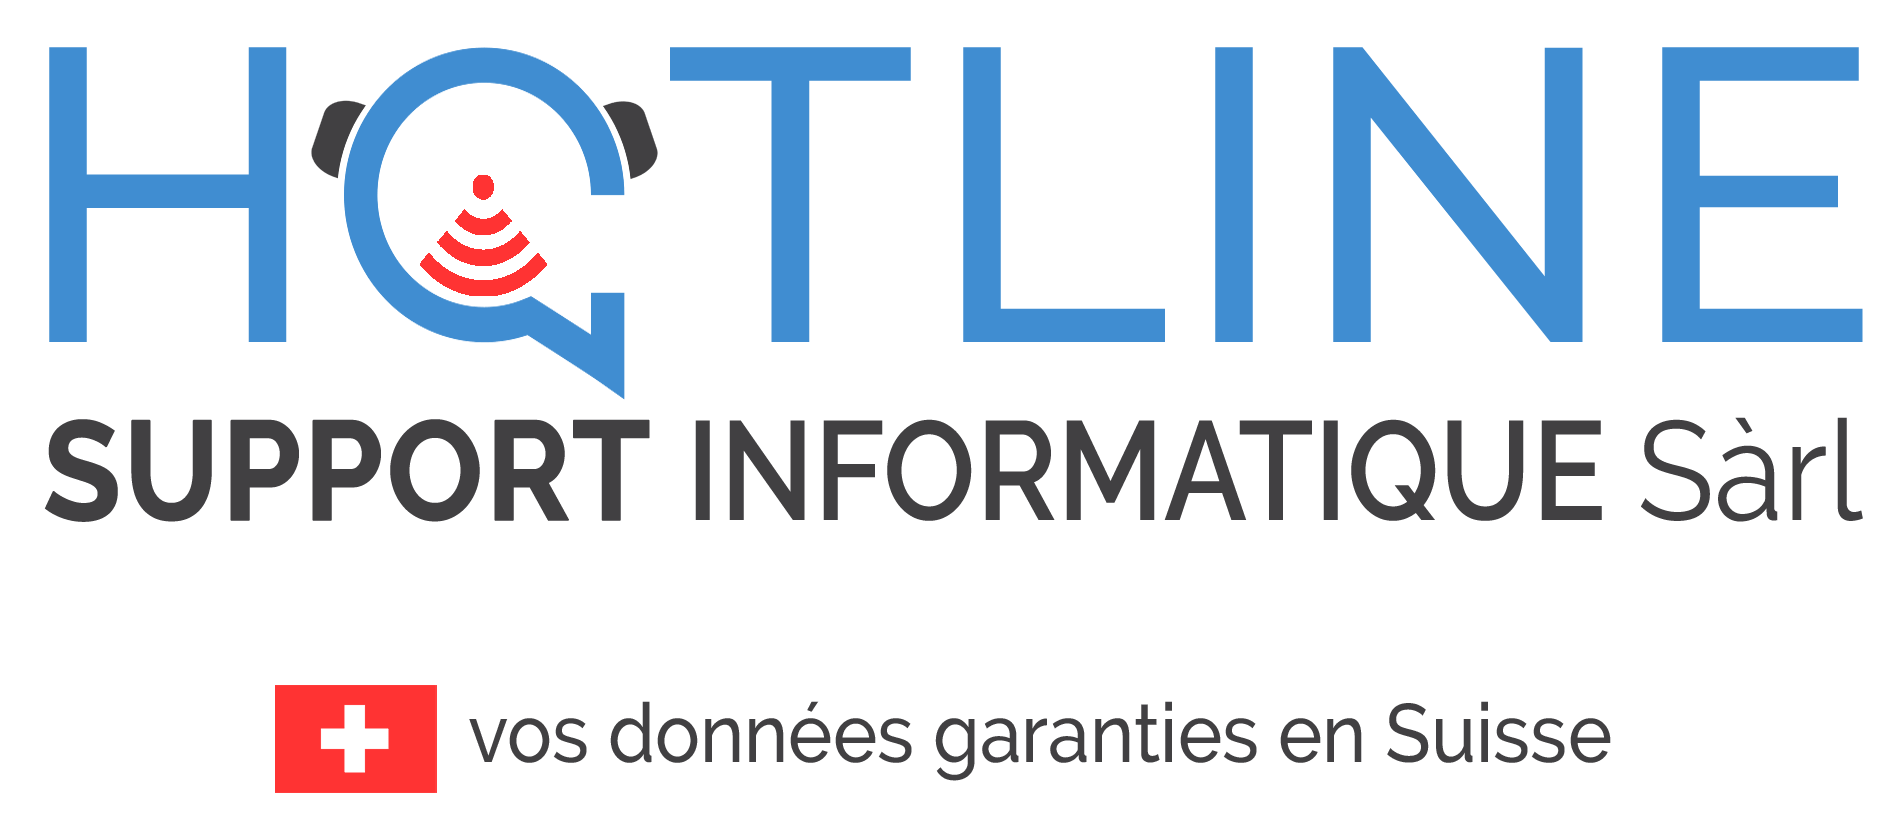 www.hotline-informatique.com